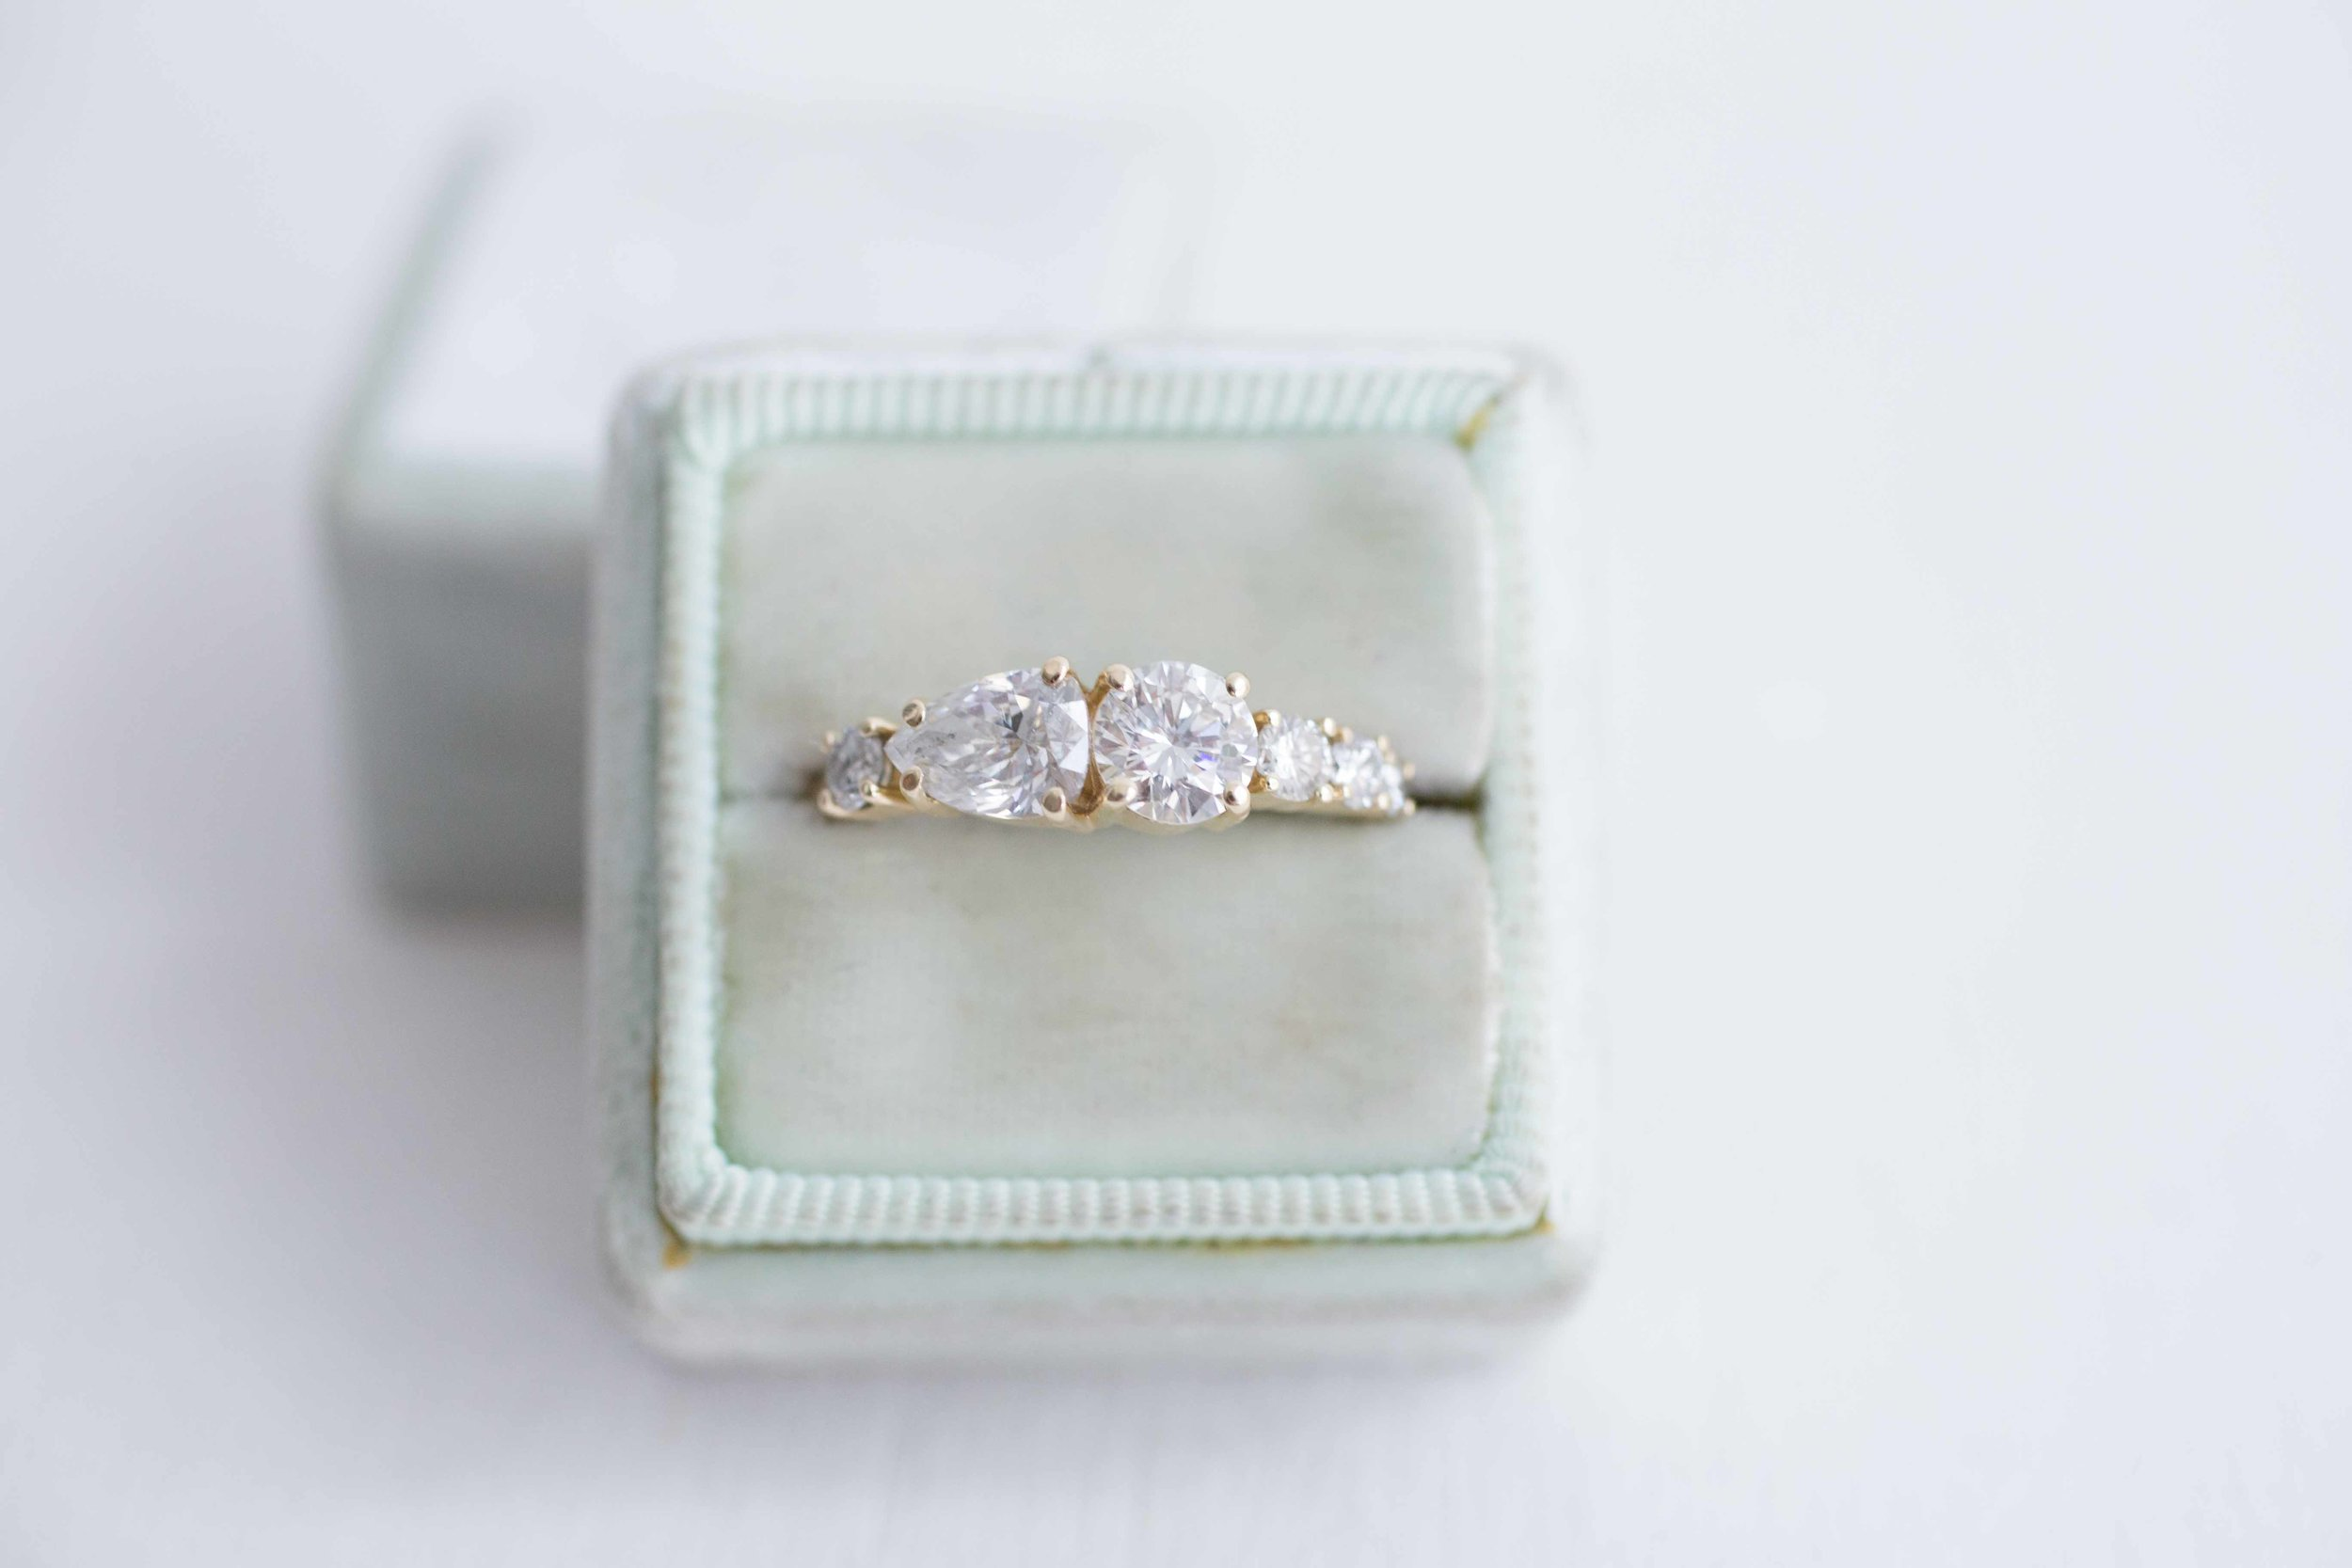 Hanah Vissepo Custom Heirloom Diamond Cluster Ring-11.jpg